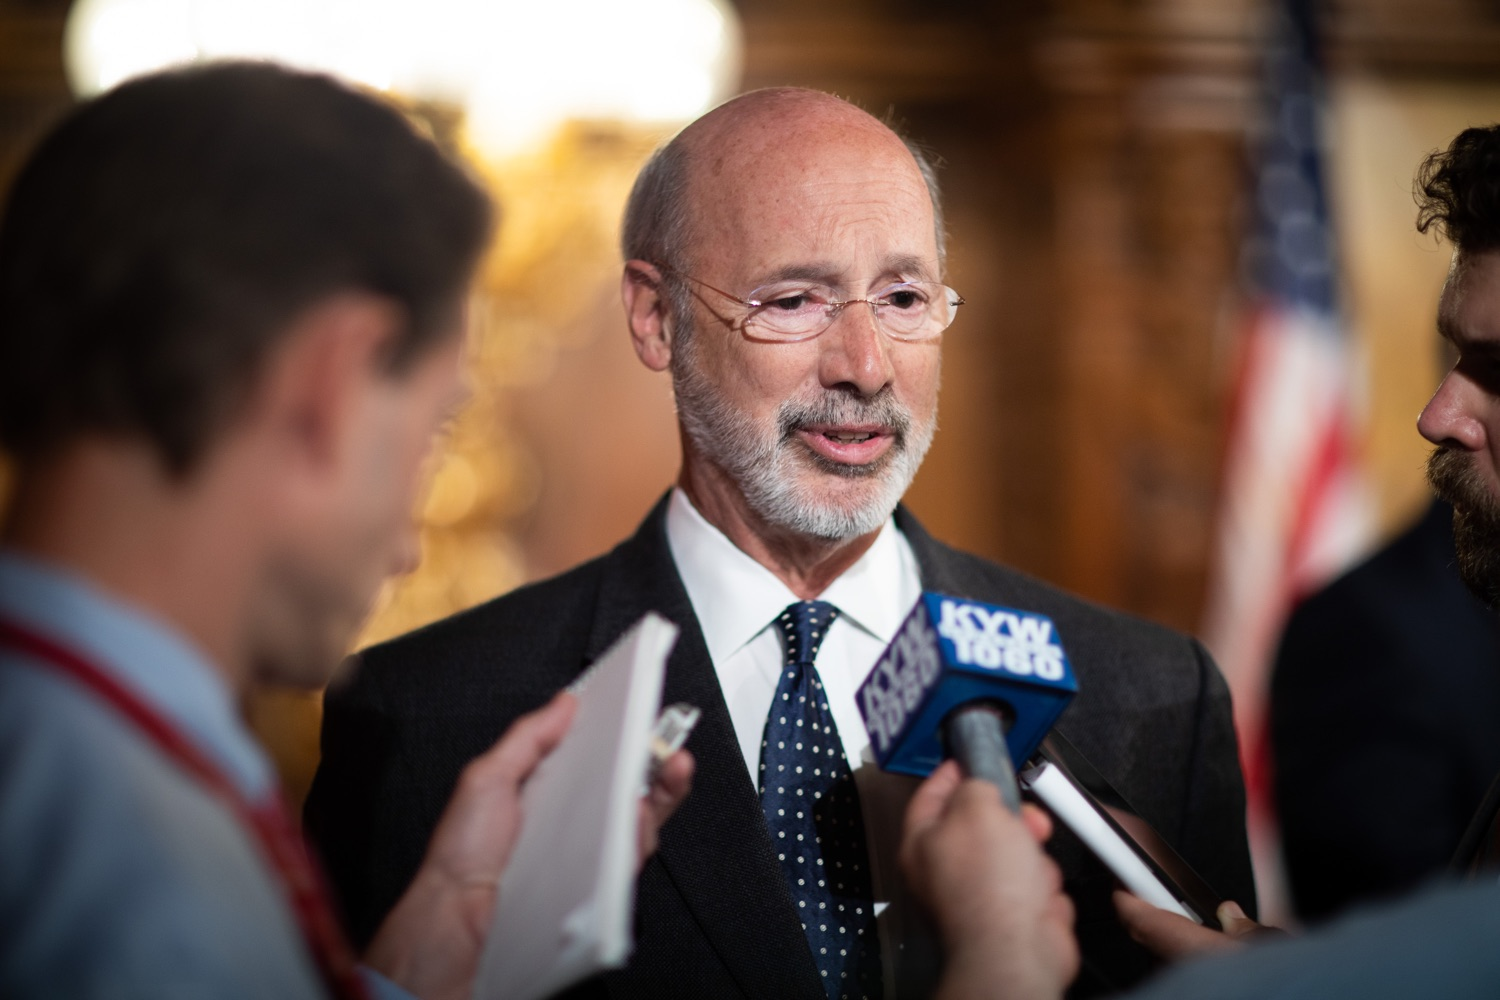 """<a href=""""https://filesource.wostreaming.net/commonwealthofpa/photo/17423_gov_trip_recap_dz_011.jpg"""" target=""""_blank"""">⇣Download Photo<br></a>Harrisburg, PA  Governor Tom Wolf speaking with the press.   Governor Tom Wolf today highlighted the second half of his trip abroad, including visiting with more than 500 PA National Guard (PNG) troops in Poland, and honoring the Tree of Life synagogue victims at the Auschwitz-Birkenau Memorial. Tuesday, September 17, 2019"""